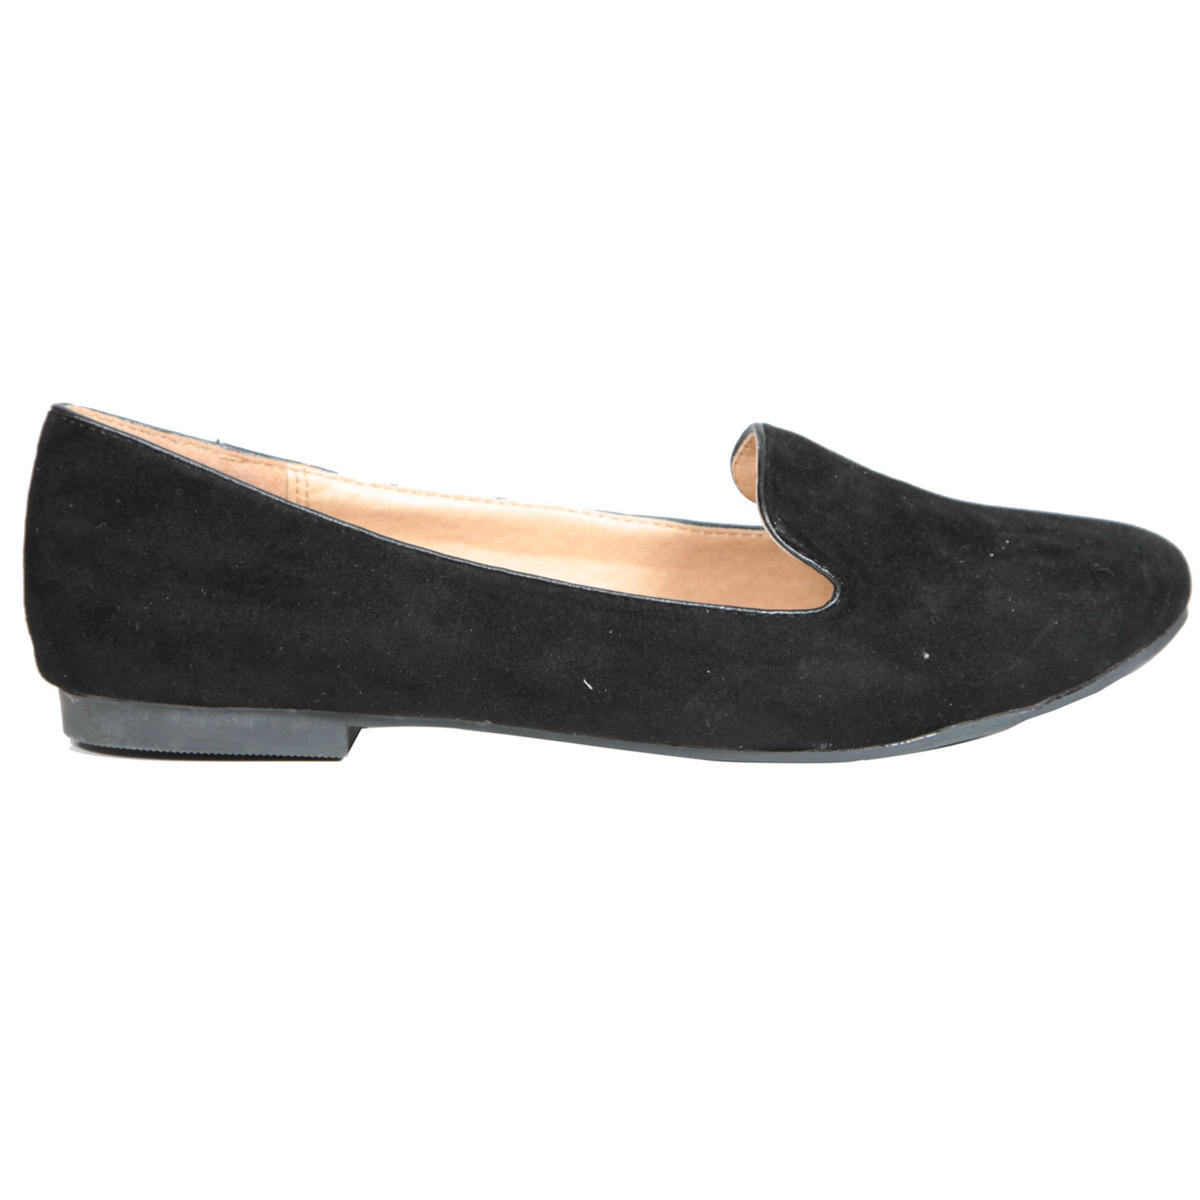 Black Flat Slipper Shoe Preview